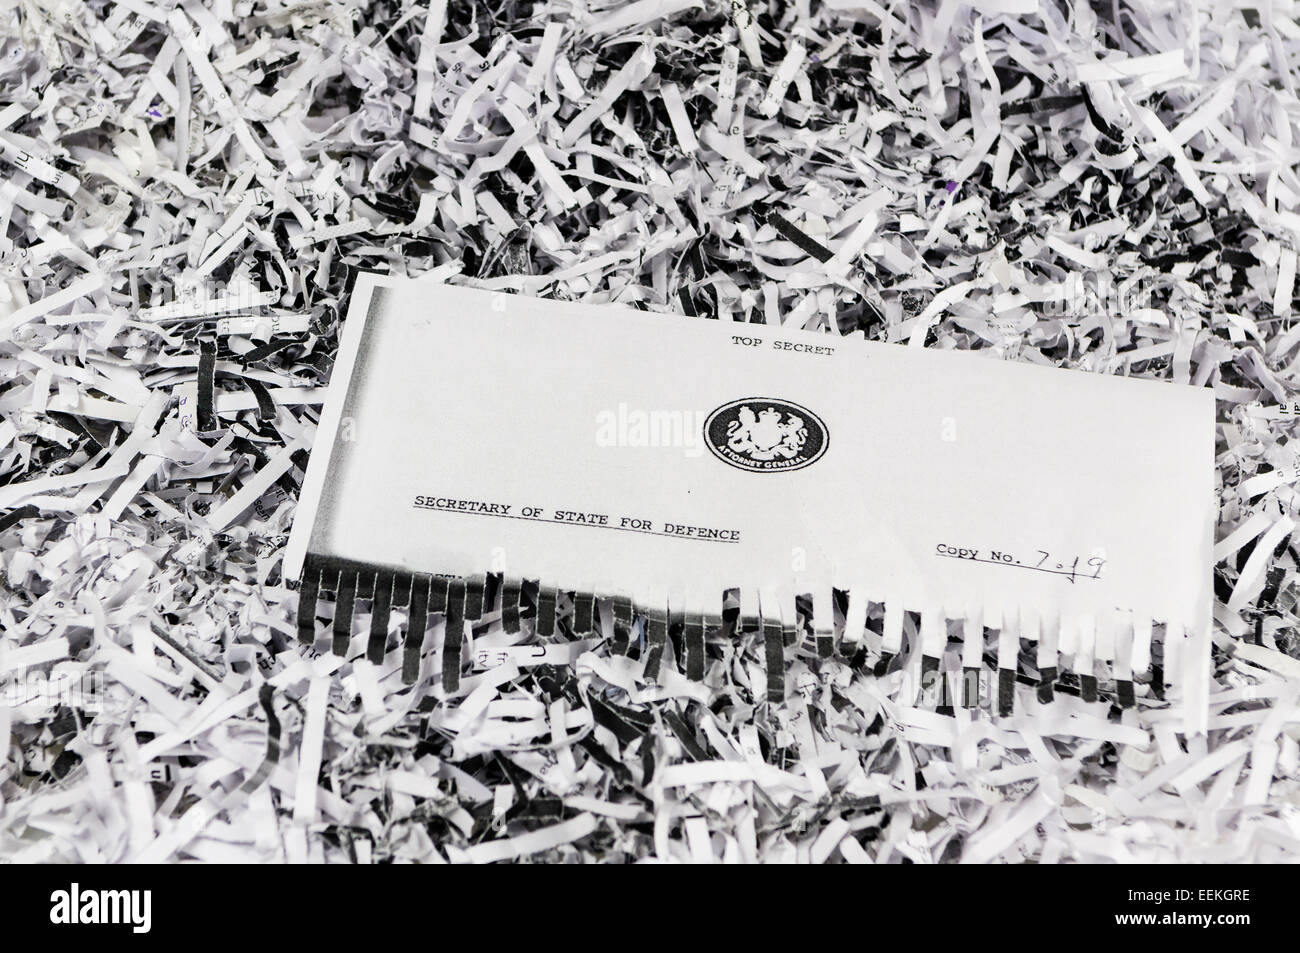 Half shredded 'Top Secret' classified correspondence from the UK Attorney General to the Secretary of State - Stock Image